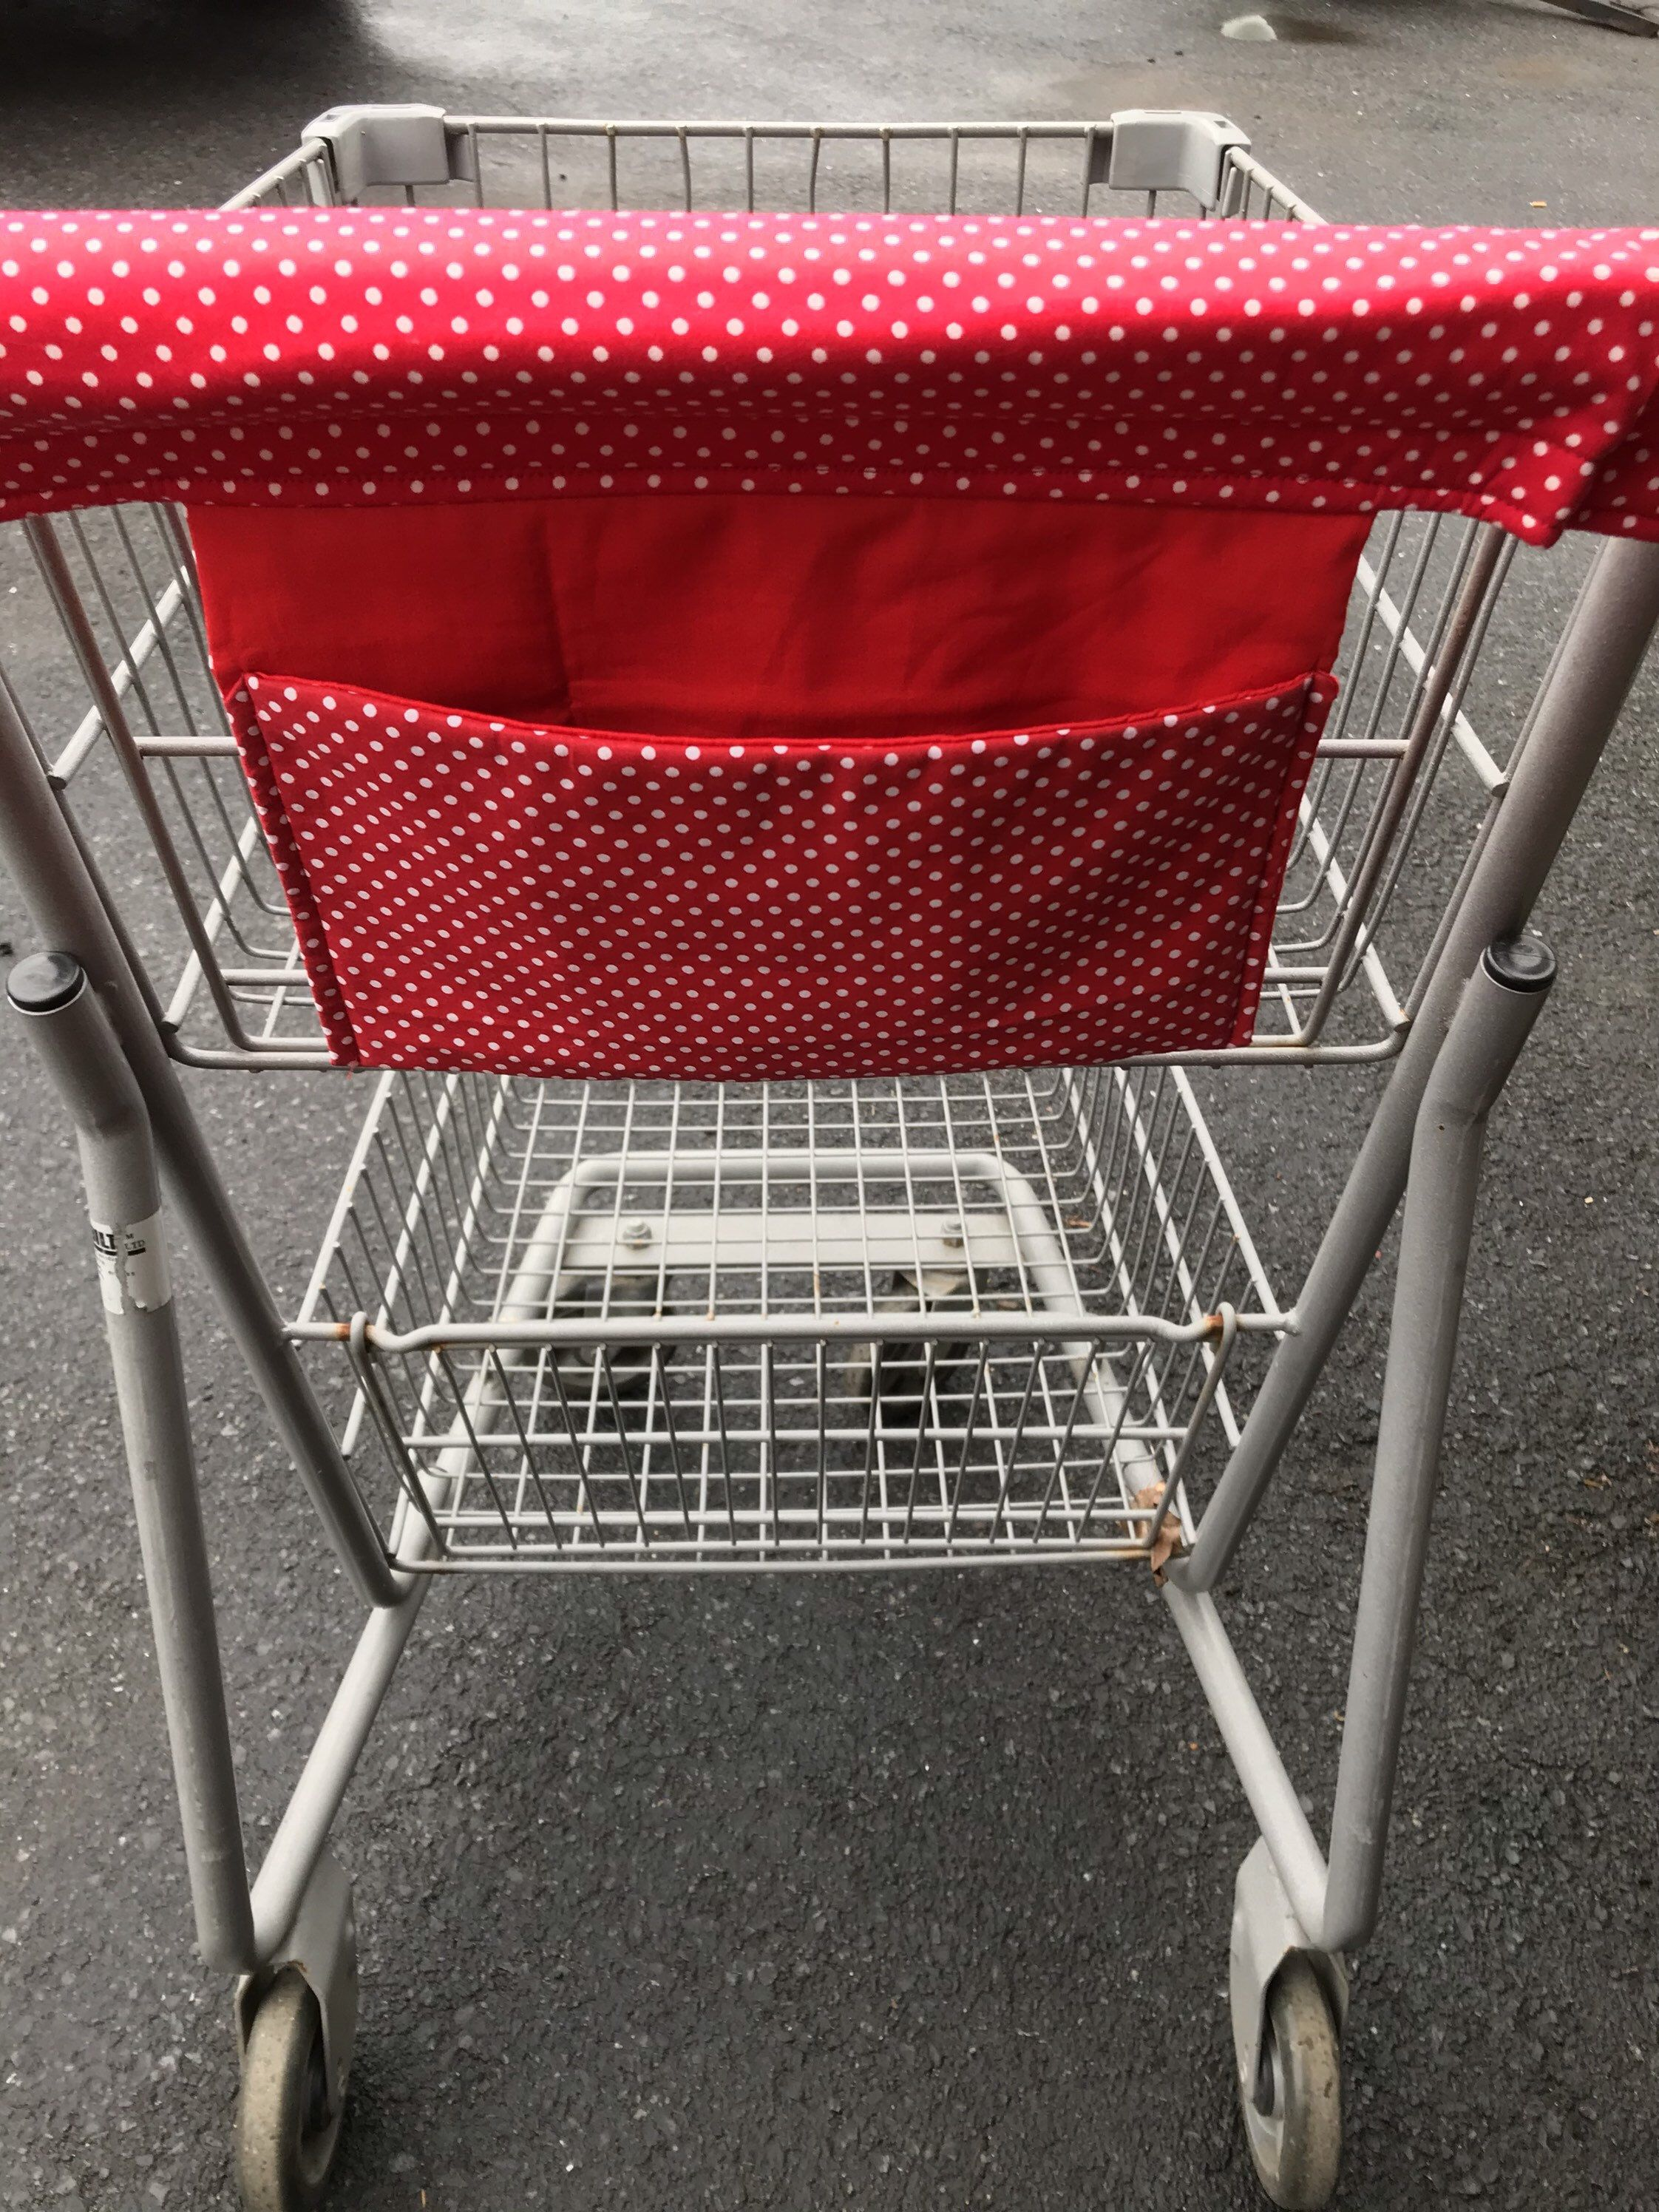 Custom Order For Noel Shopping Cart Cover With Wallet Pocket Red Polka Dots Cotton Print Cart Cover Shopping Handy Cart Cover In 2020 Cart Cover Shopping Cart Cover Shopping Cart Cover Diy